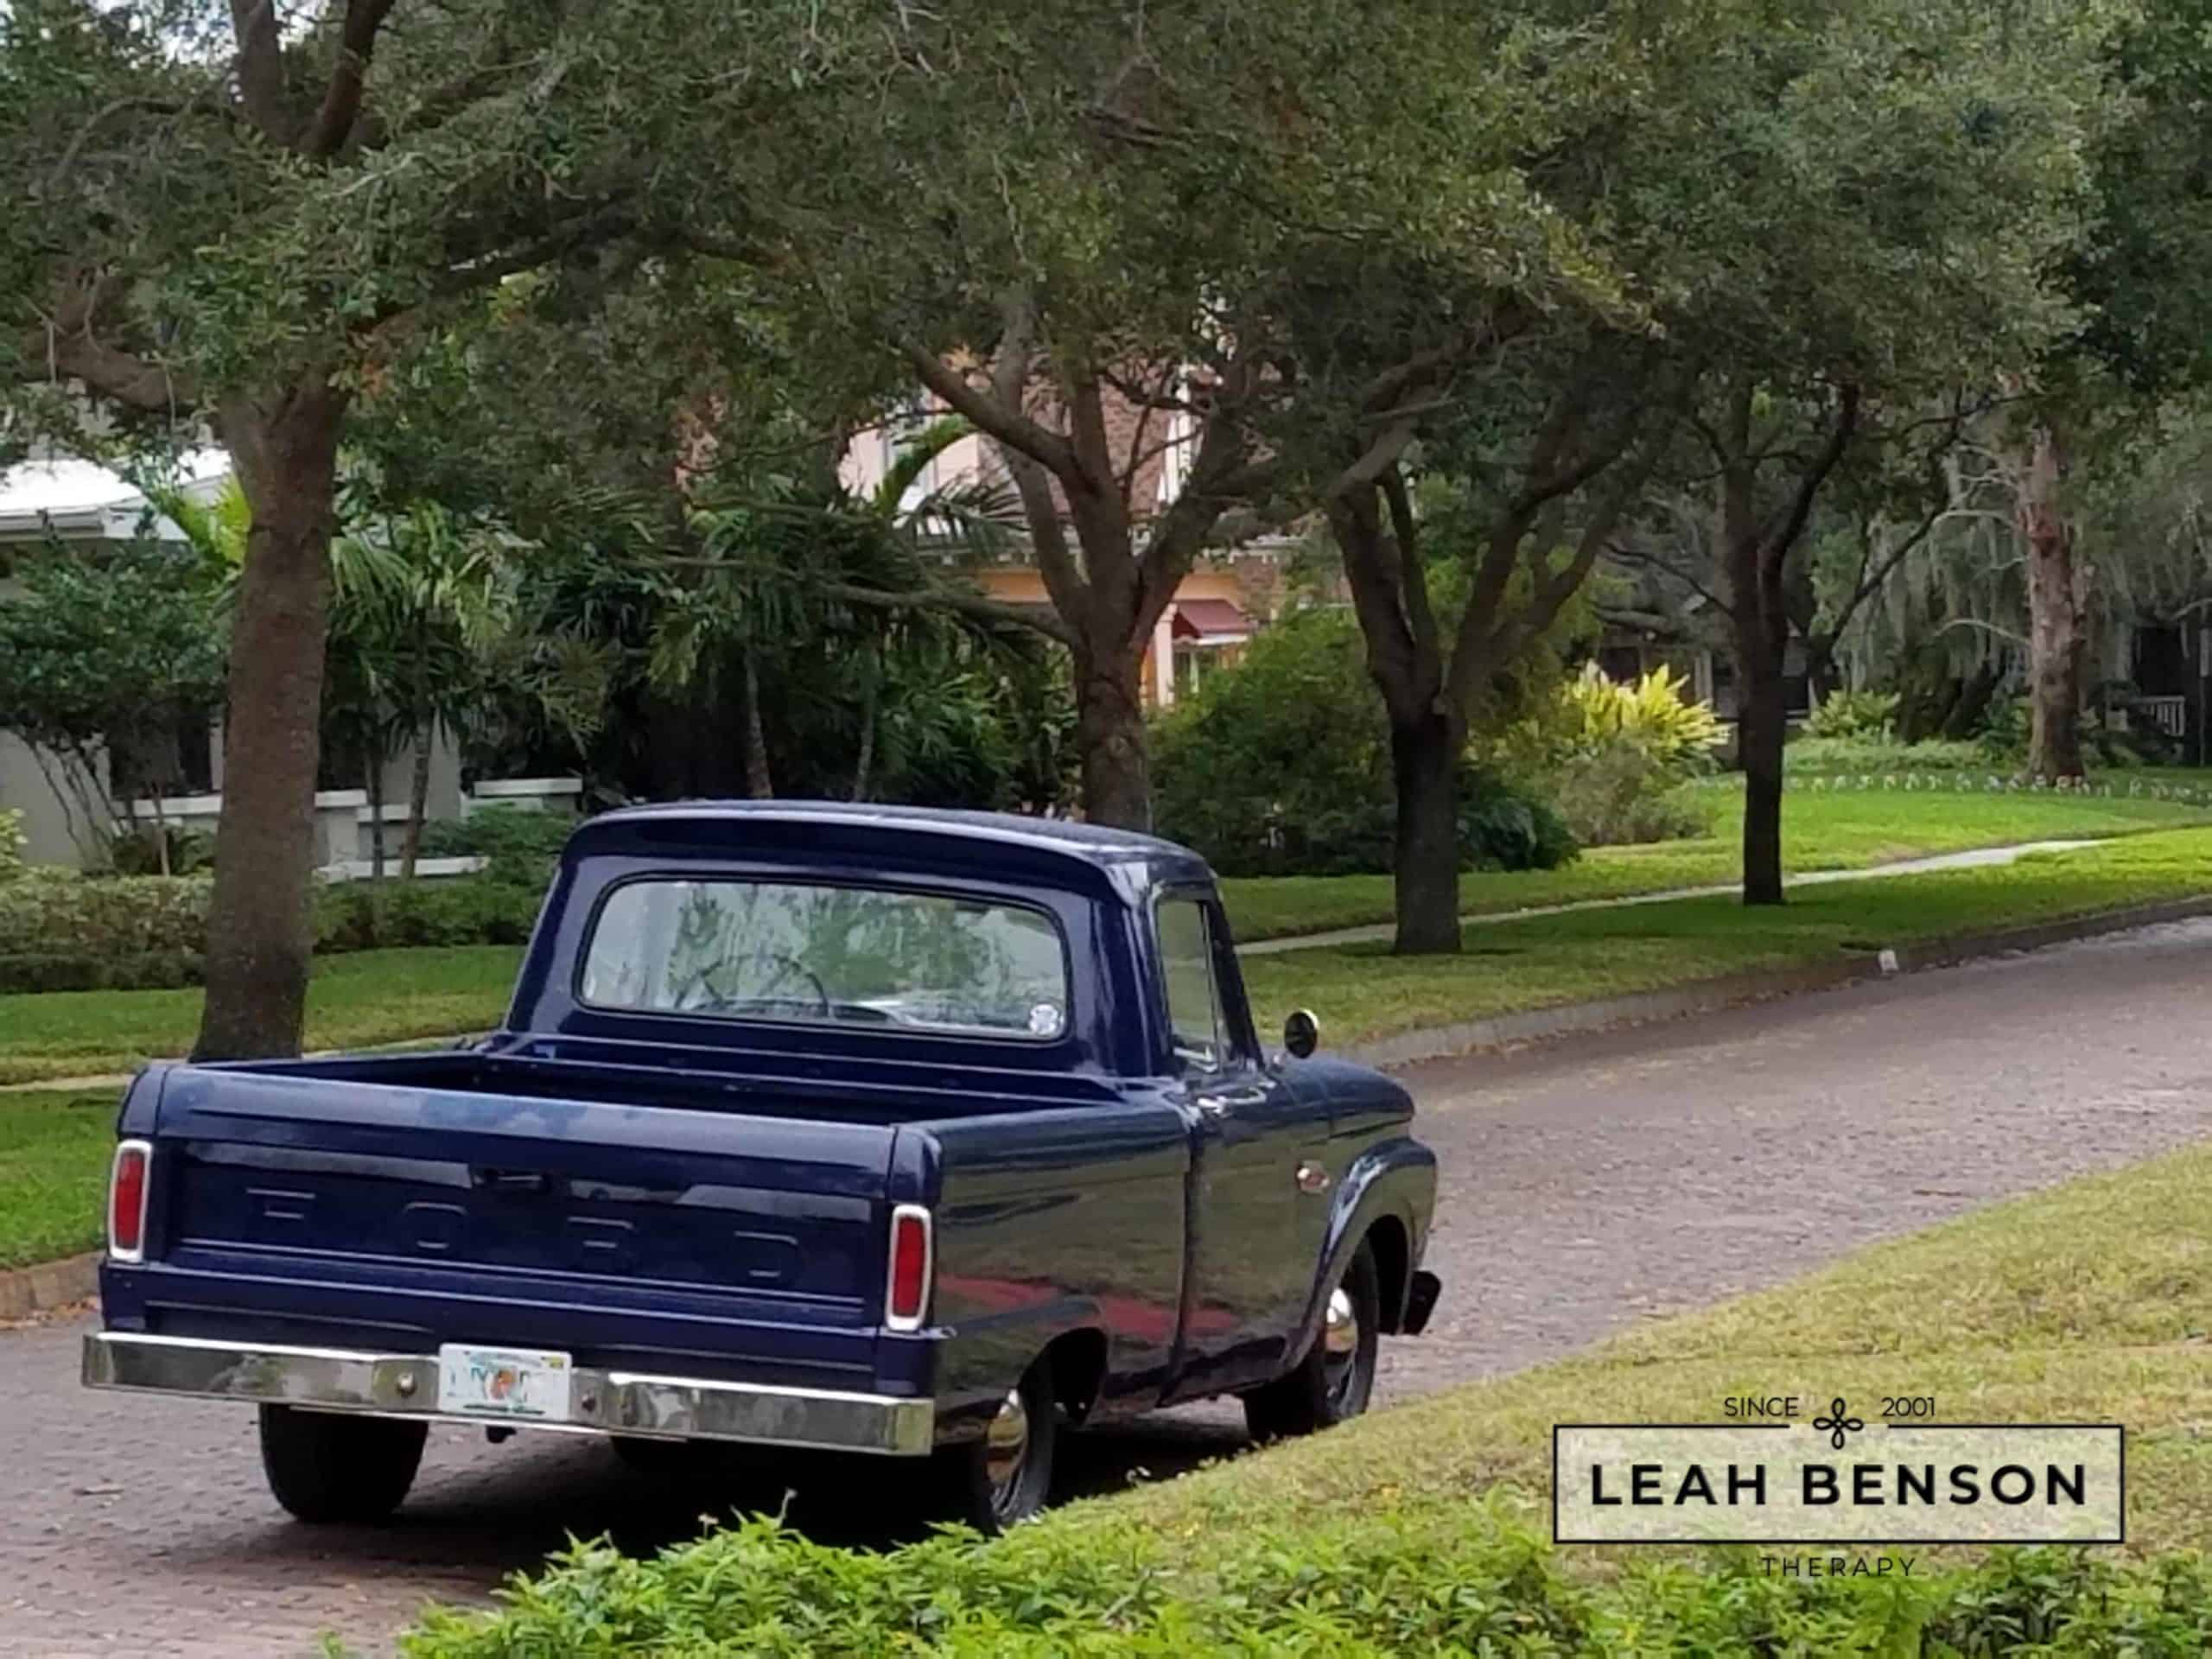 1960's blue Ford pickup truck parked in the Old Northeast of St Petersburg with the logo of Leah Benson Therapy